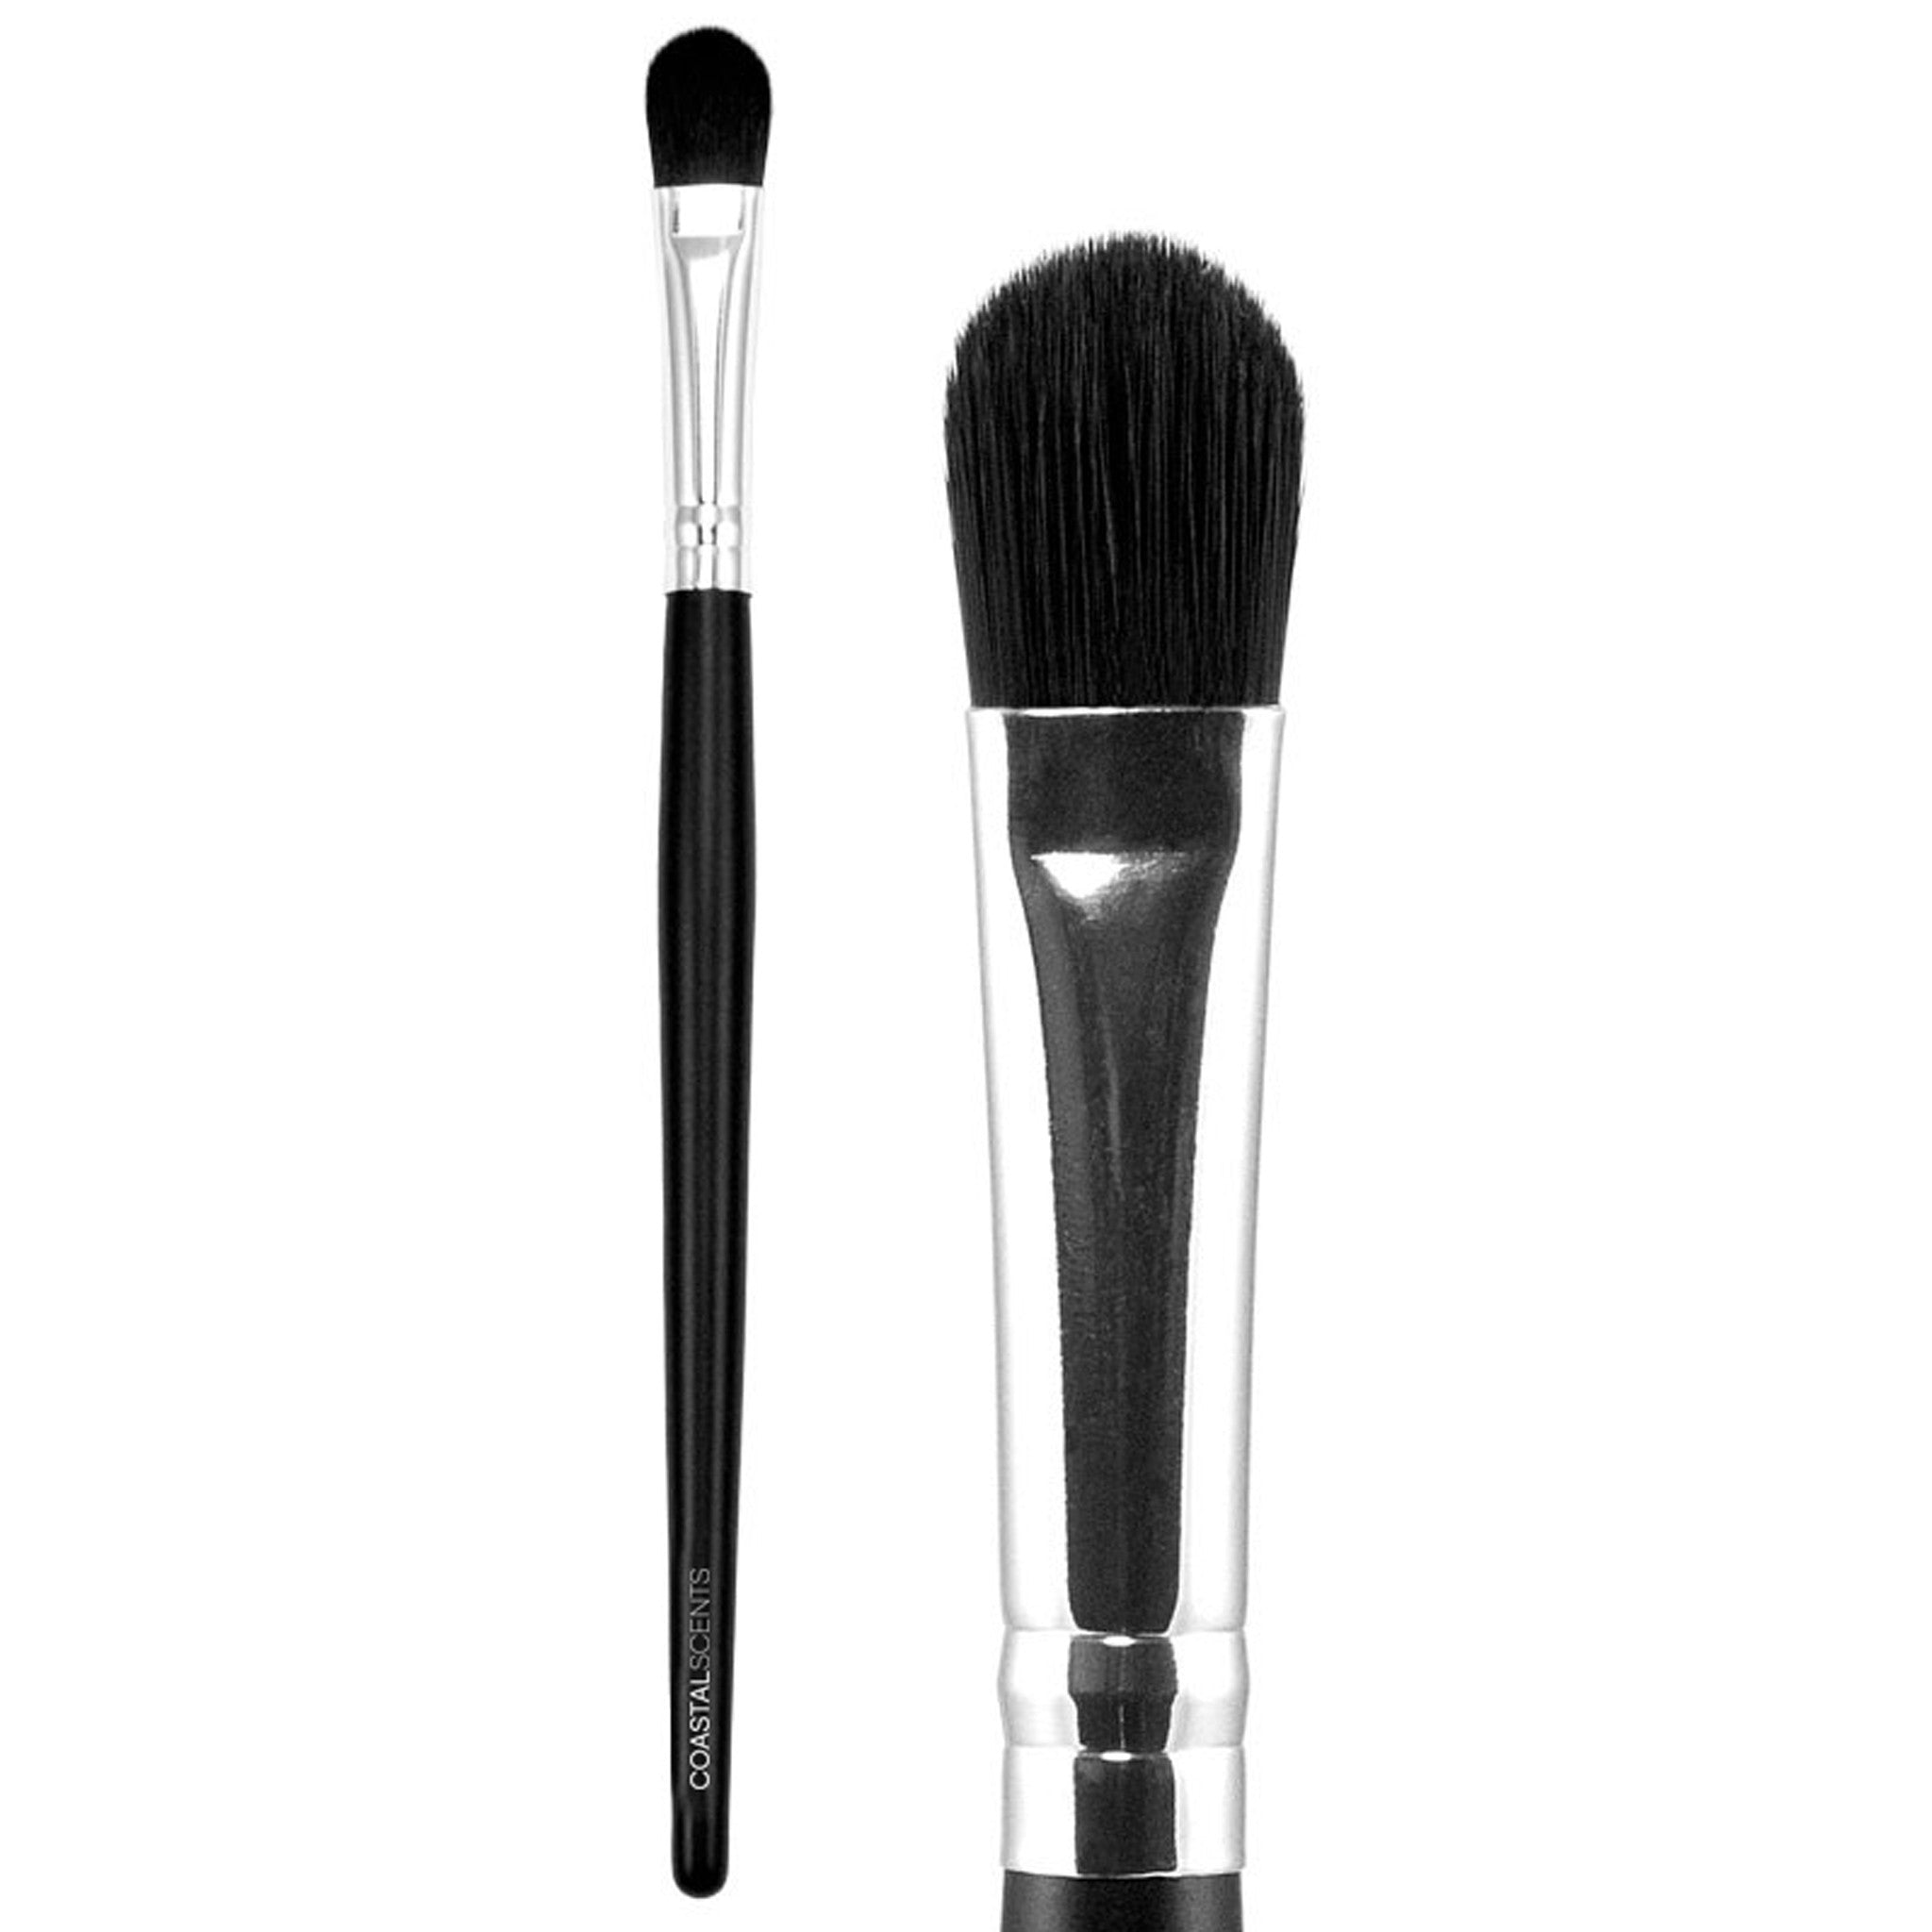 Makeup Brushes -Classic Foundation Concealer Brush Medium Synthetic By Coastal Scents